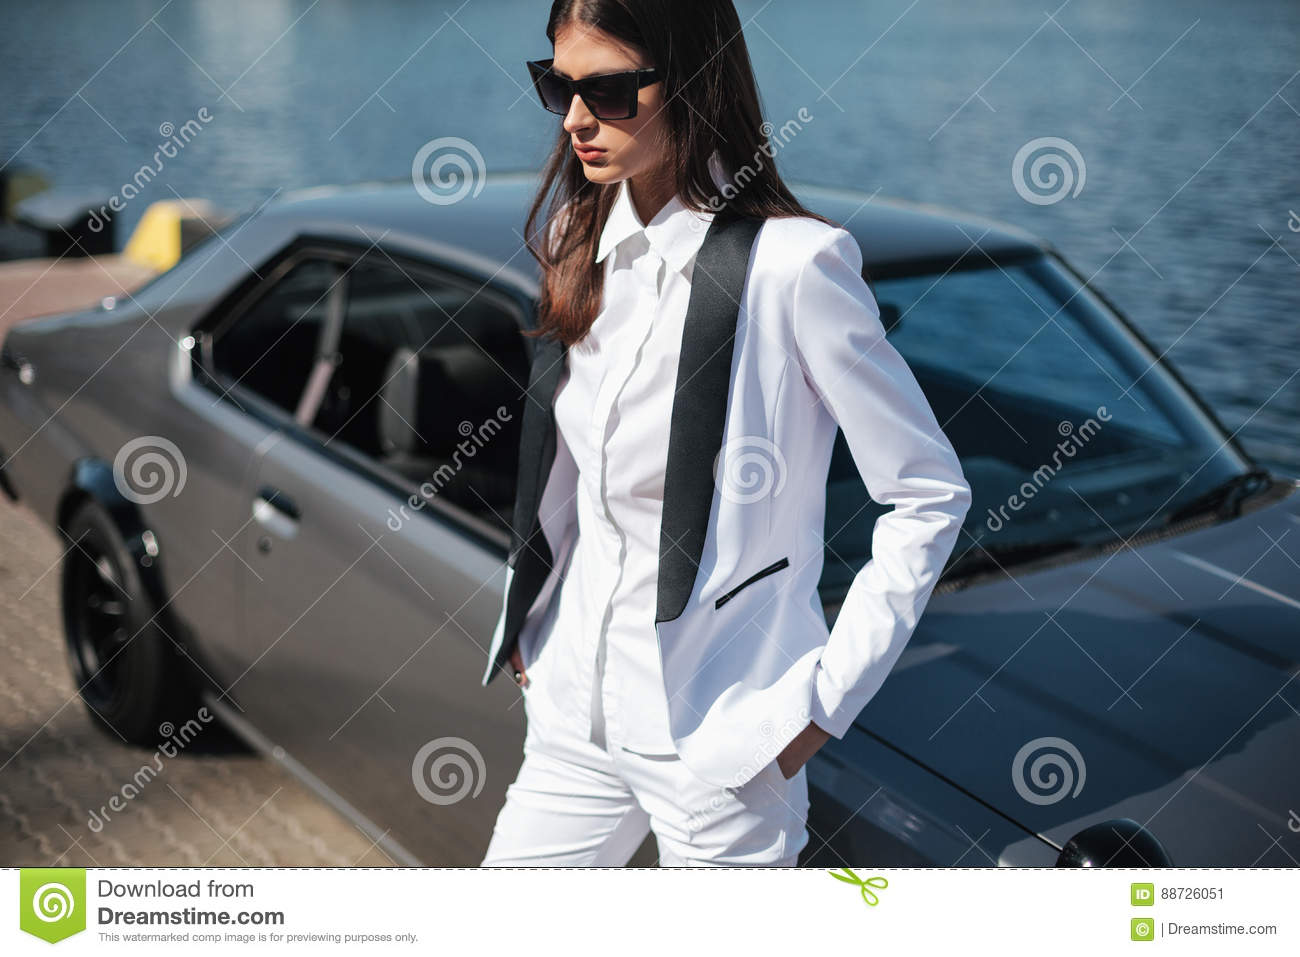 Mafia lady outside japanese car in the sea port. Fashion girl standing next to a retro sport car on the sun